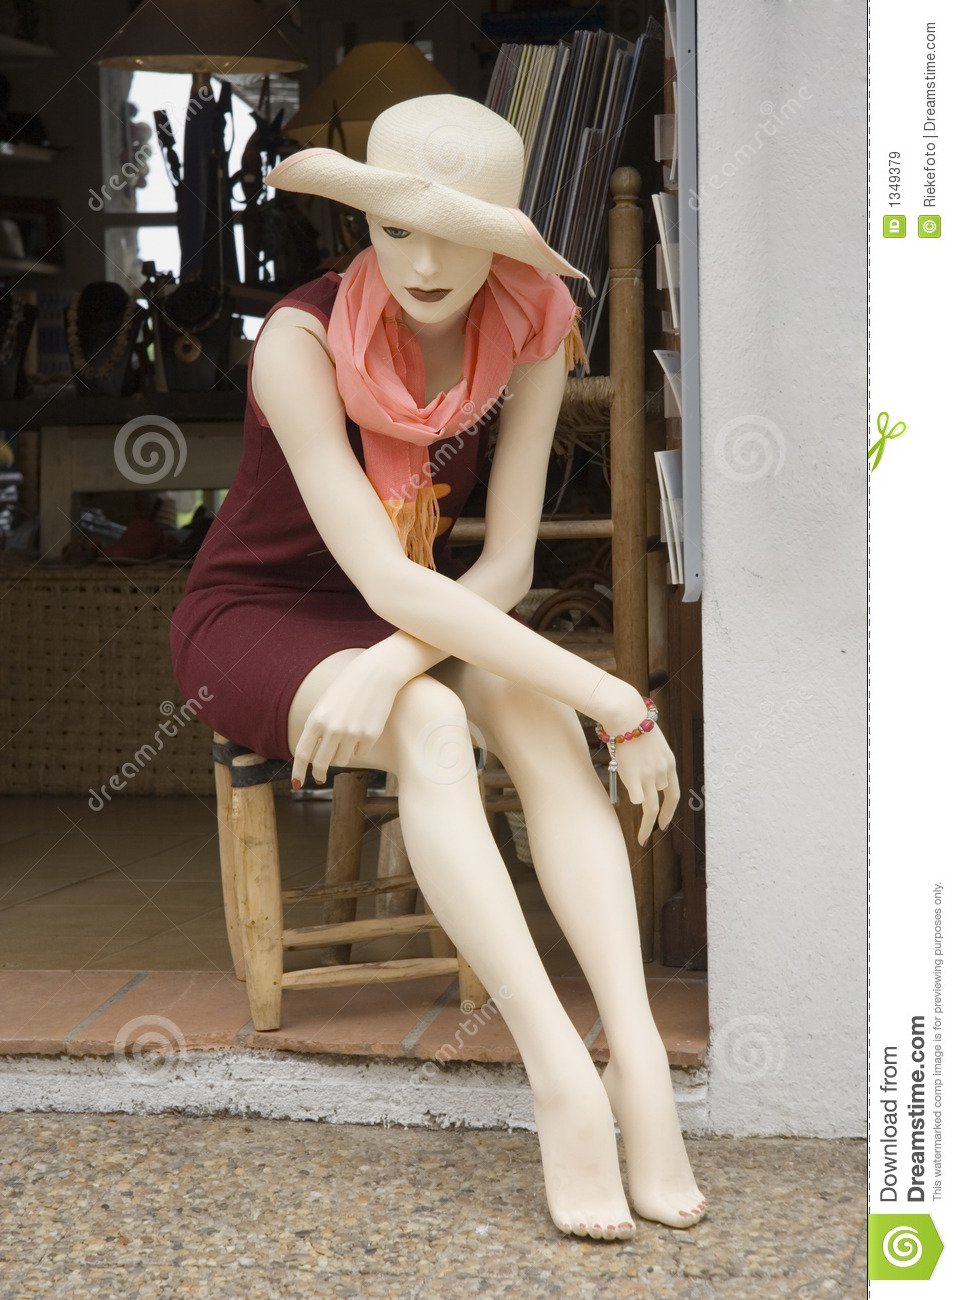 Mannequin on a chair